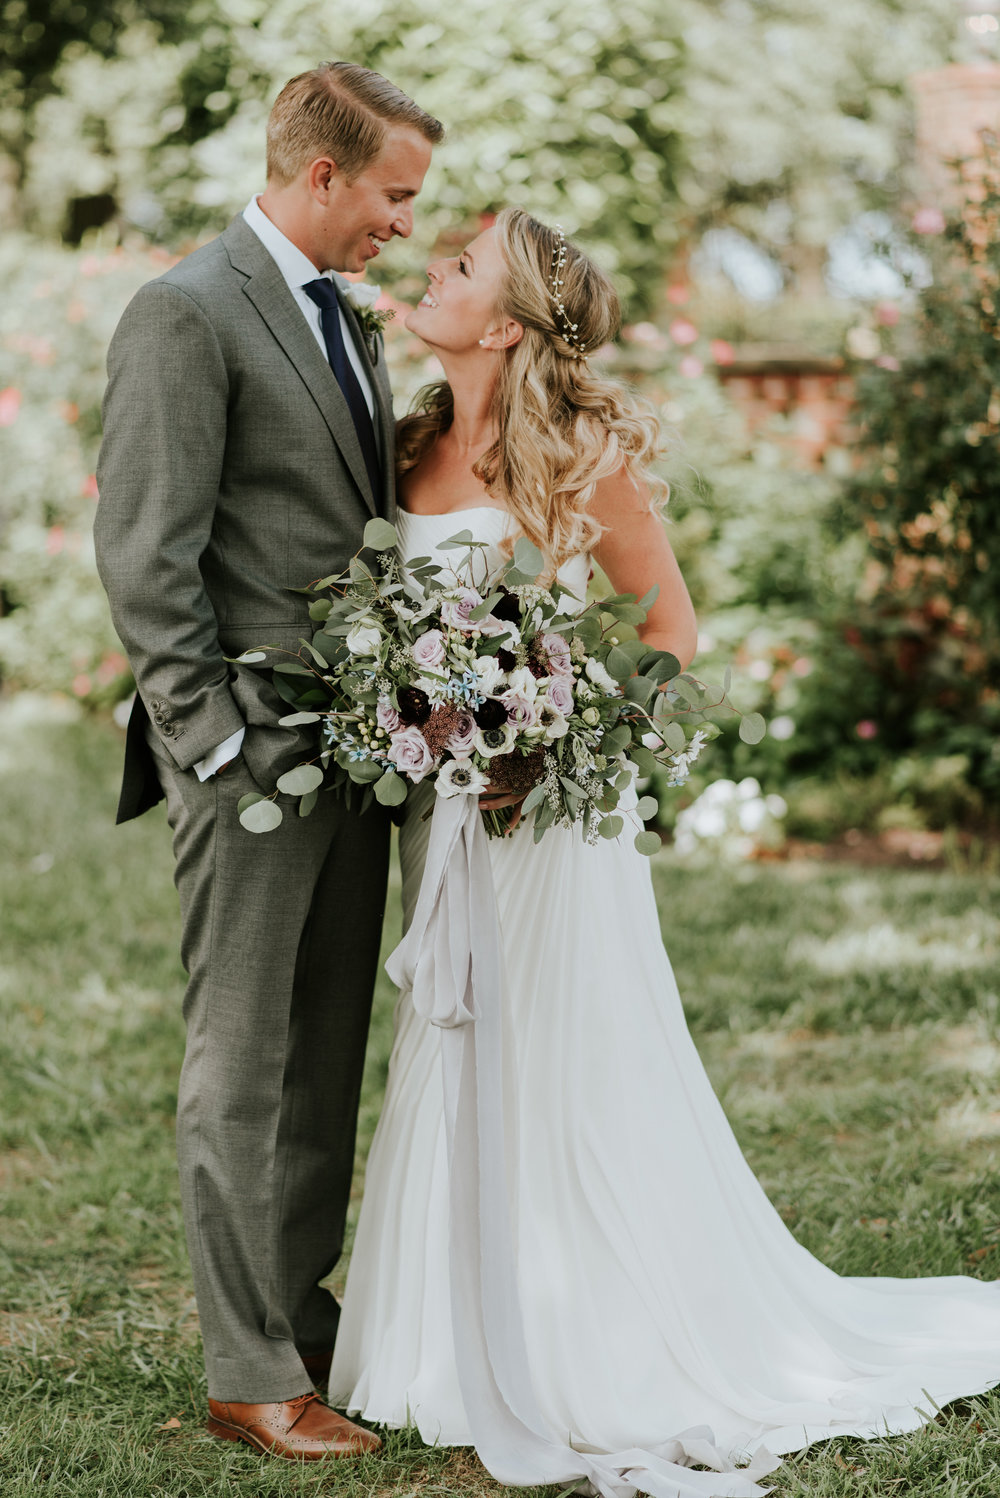 Rustic Oyster Themed Eastern Shore Maryland Outdoor Wedding by East Made Event Company Wedding Planner and Bekah Kay Creative148.jpg